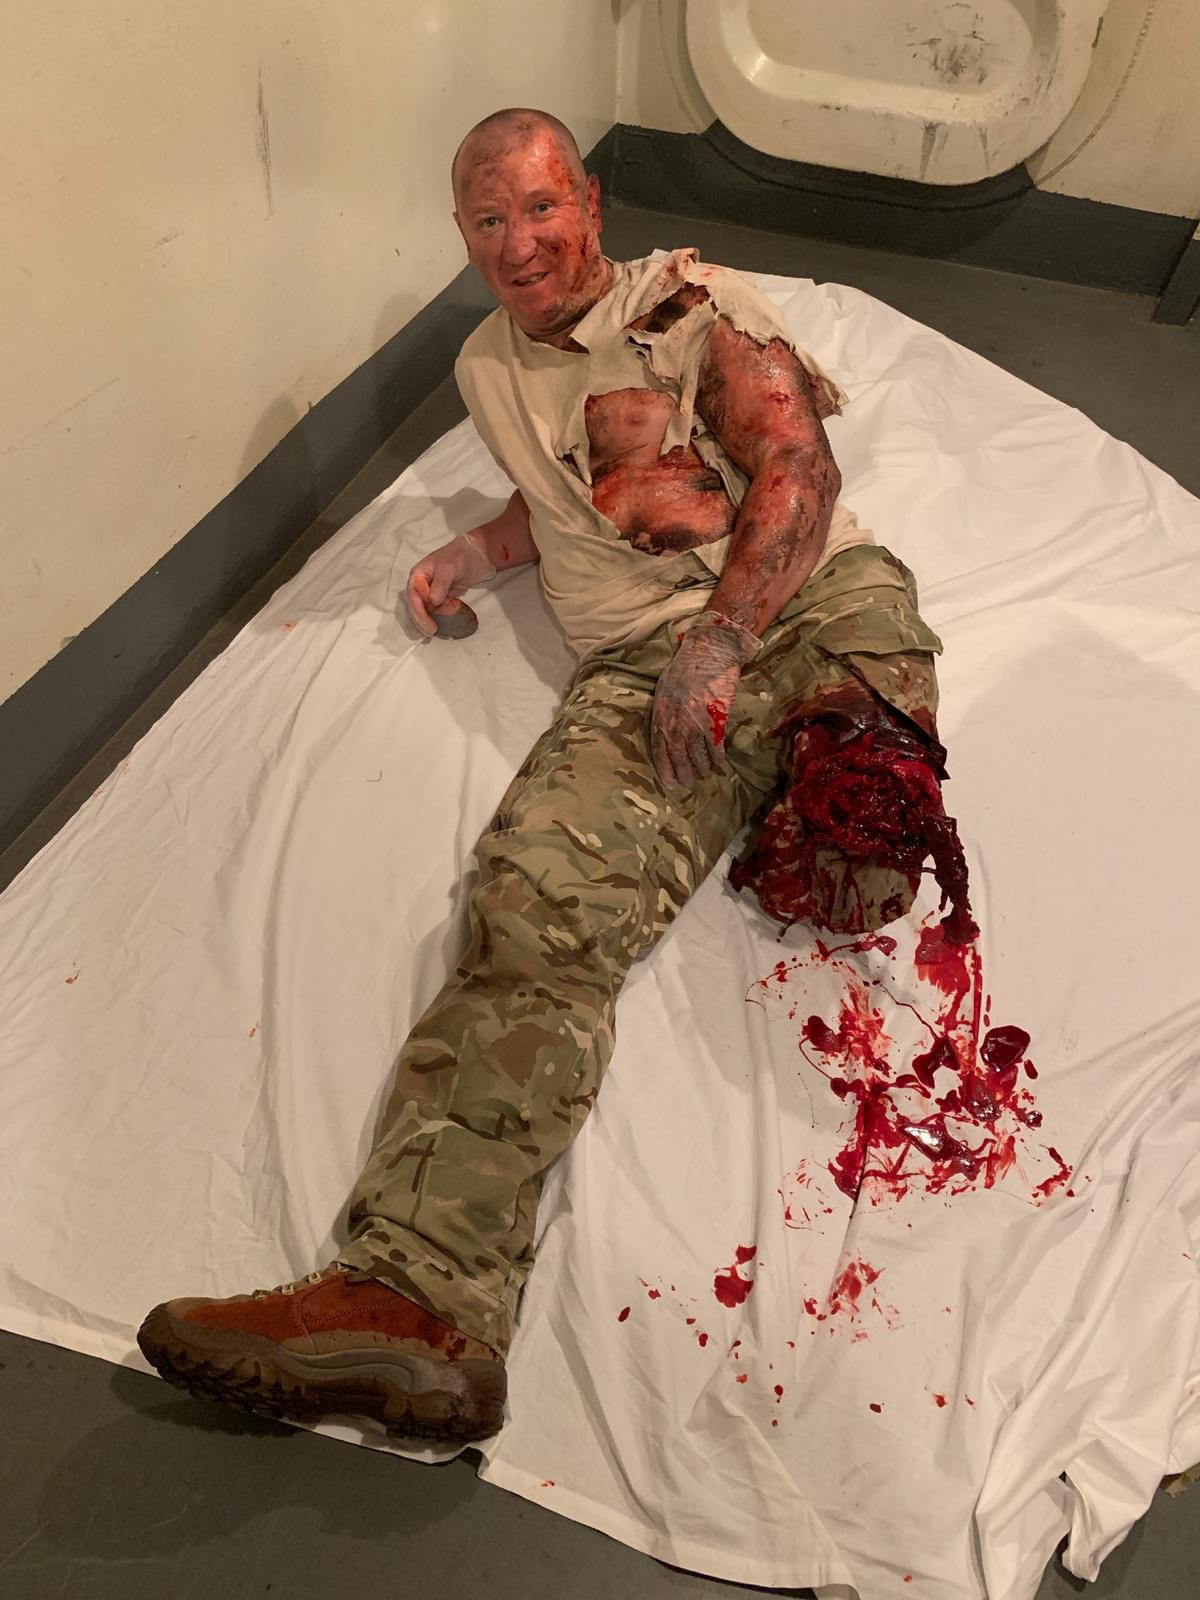 A man who appears to have violently had his leg blown off, but is actually just in makeup.